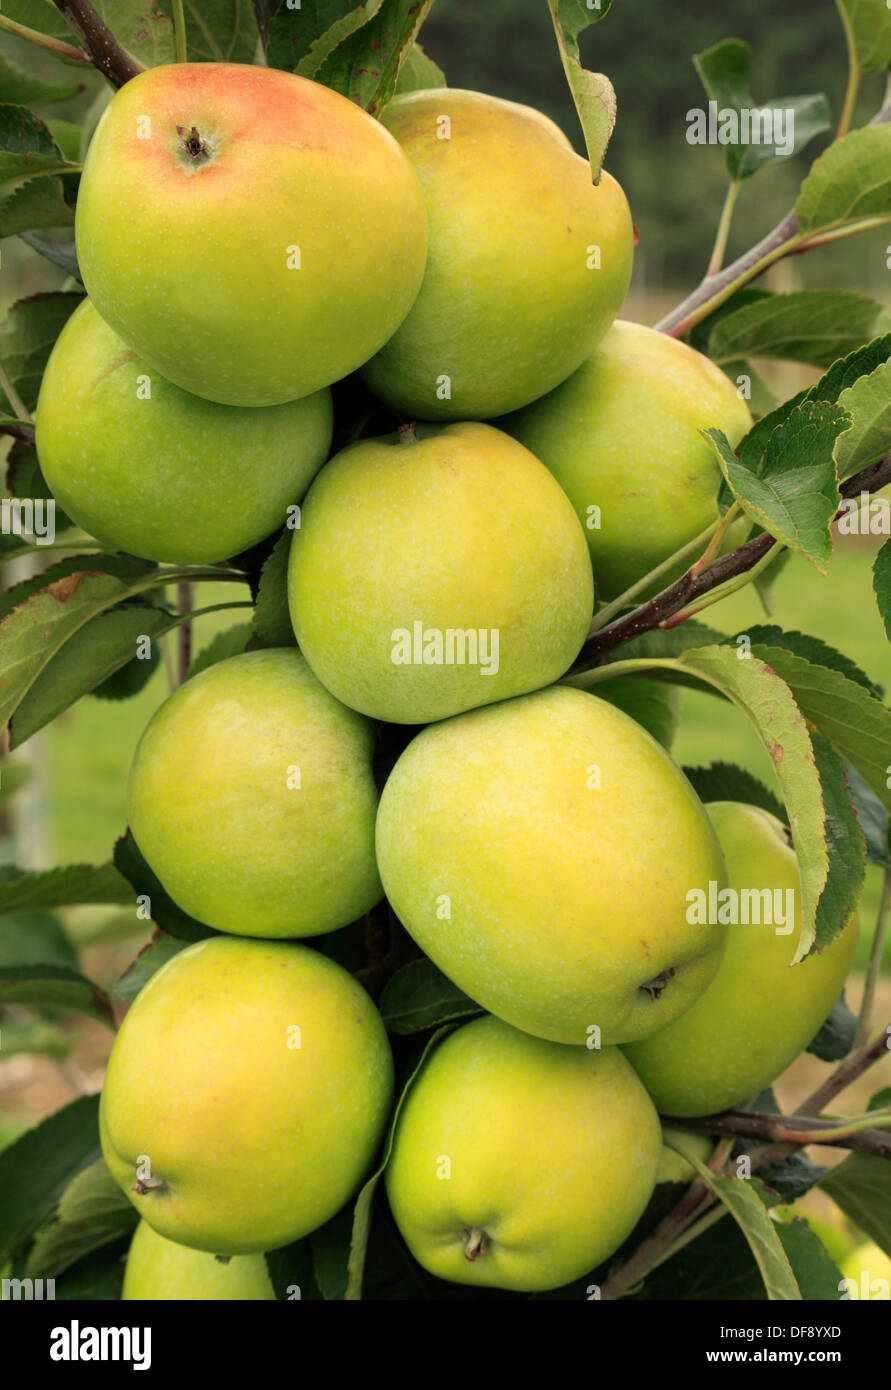 Apple 'Sturmer Pippin',  variety growing on tree, fruit apples England UK - Stock Image